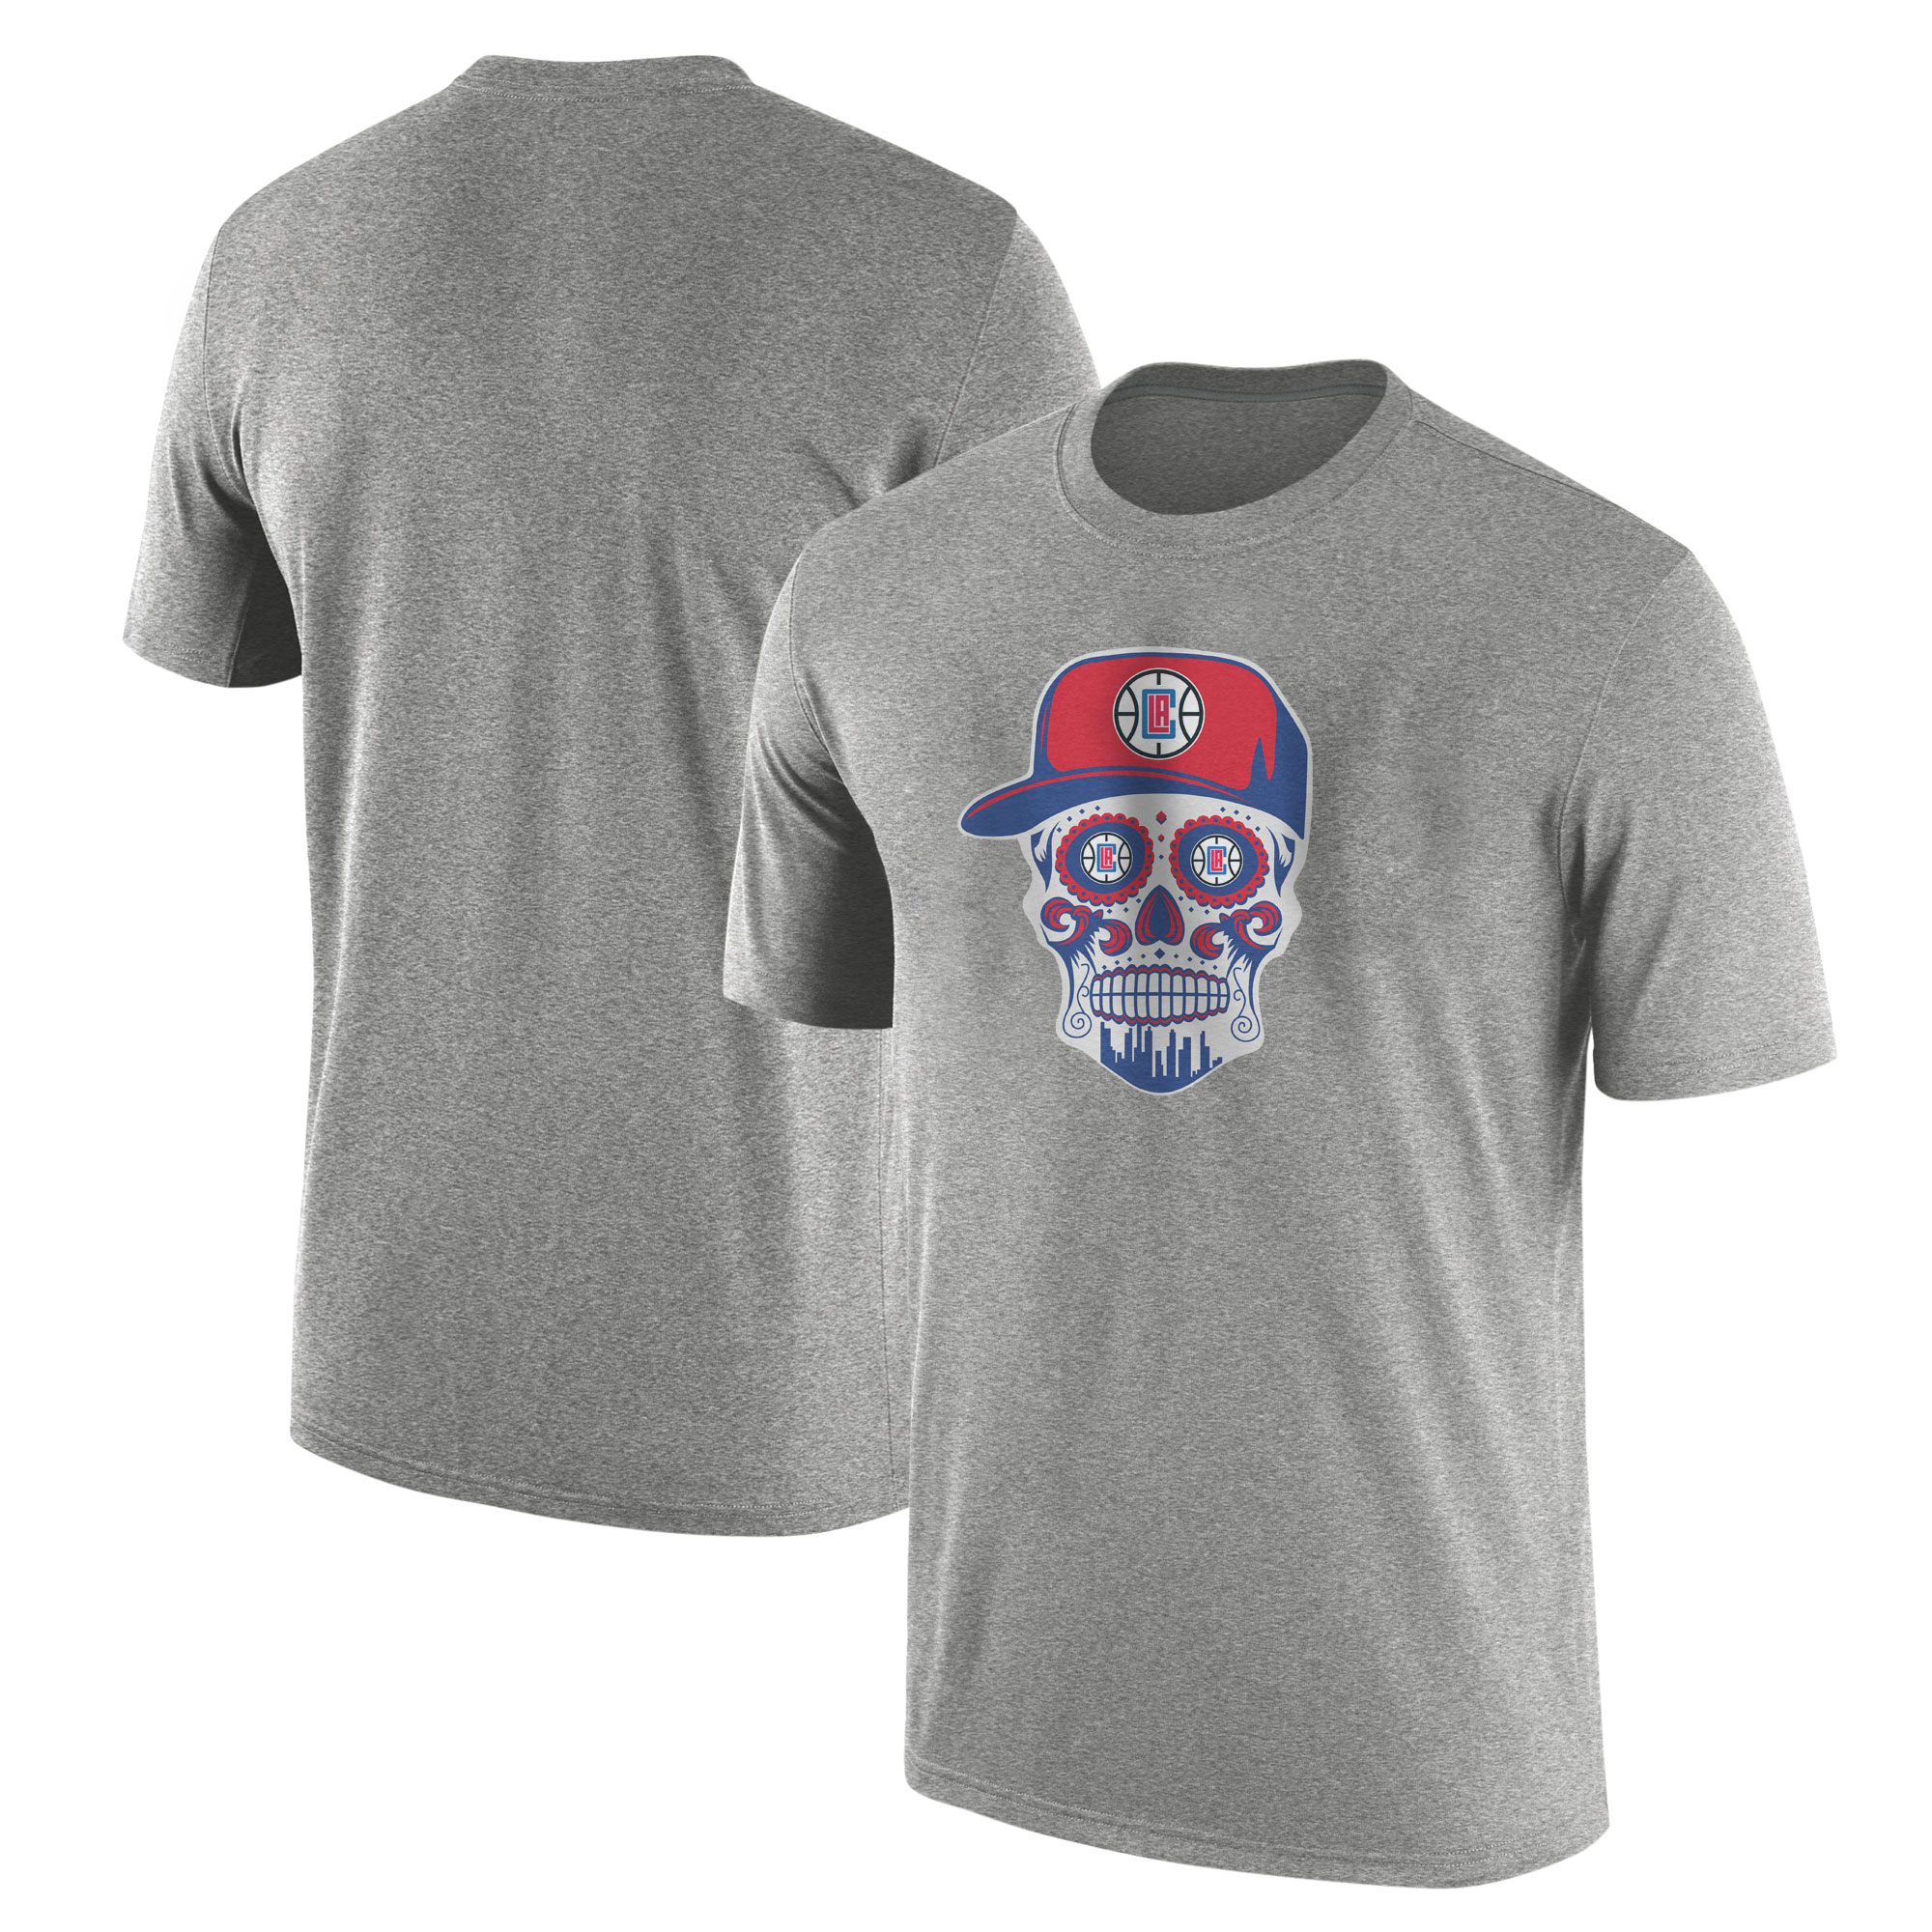 Clippers Skull Tshirt (TSH-GRY-NP-450-CLIPPERS-Skull)